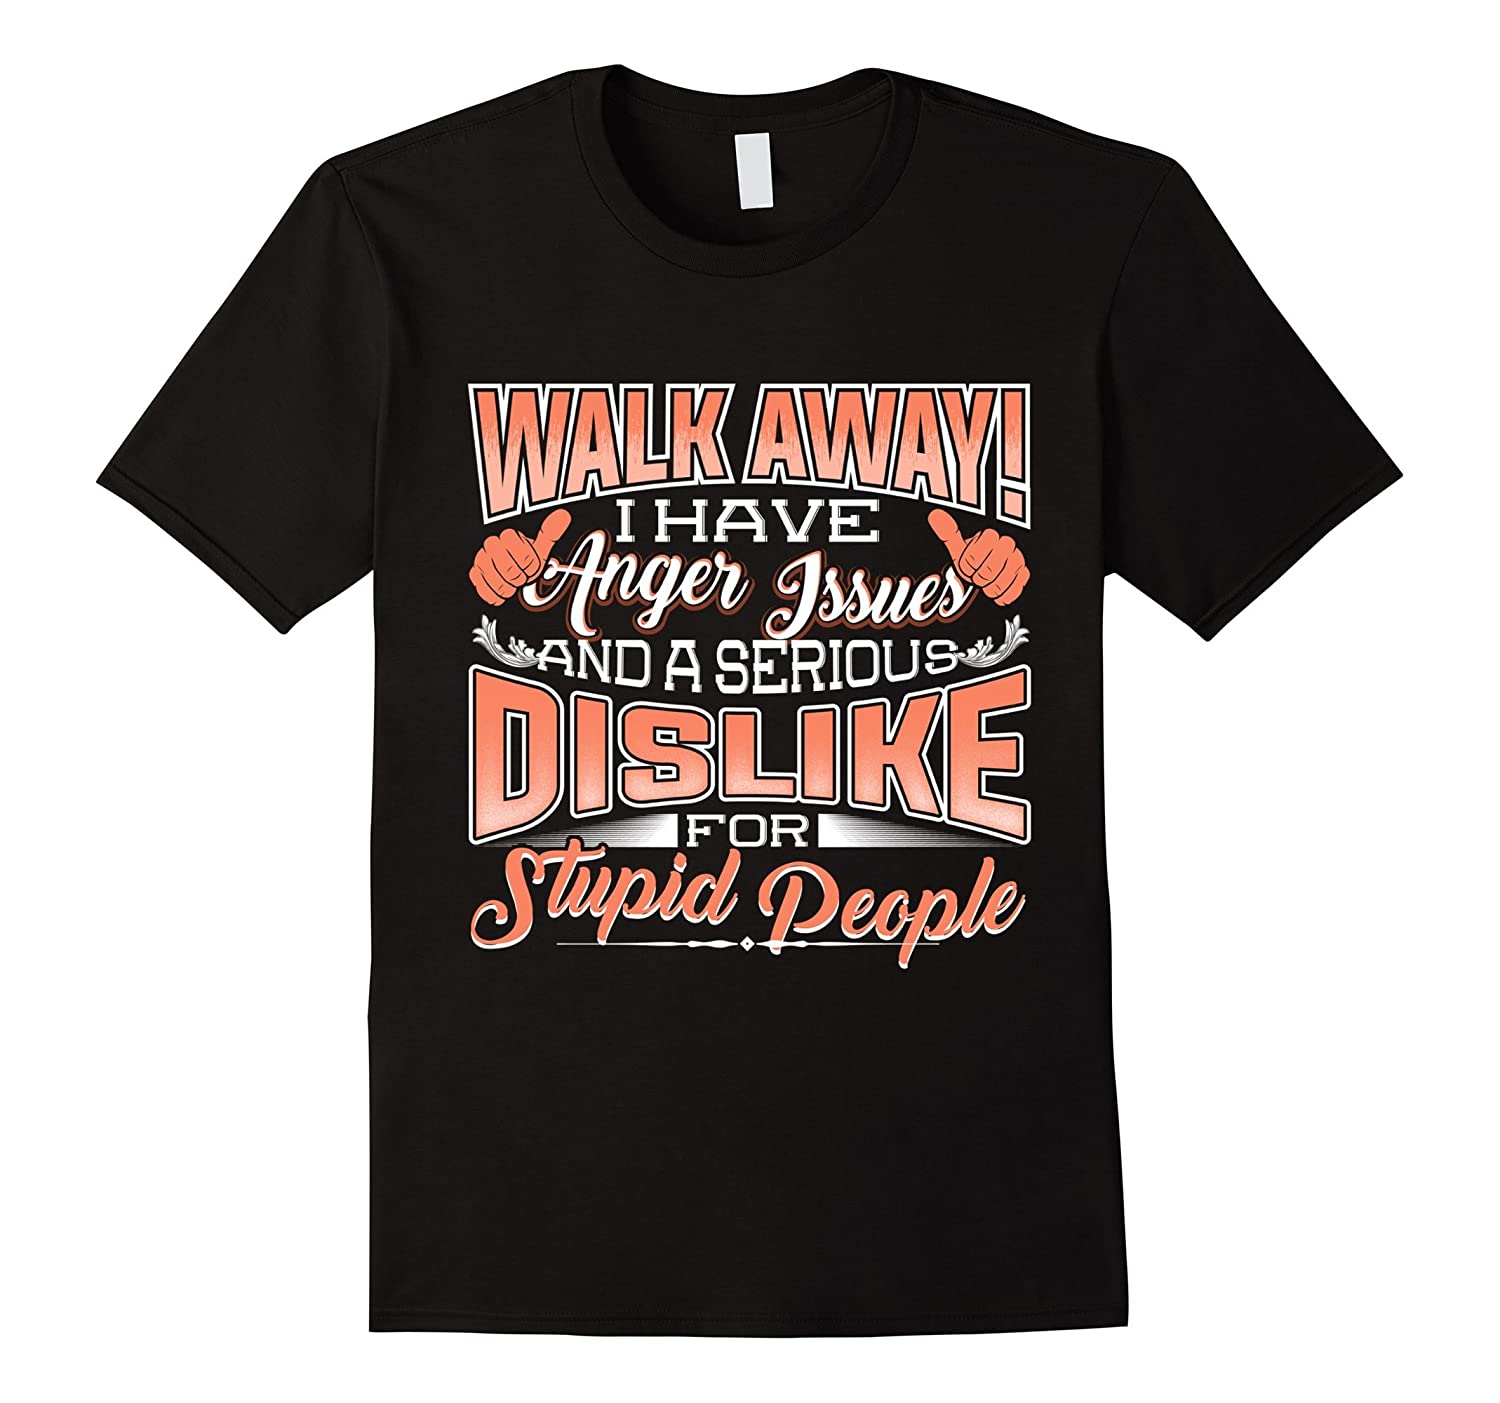 I have anger issues and serious dislike stupid people shirt-Vaci